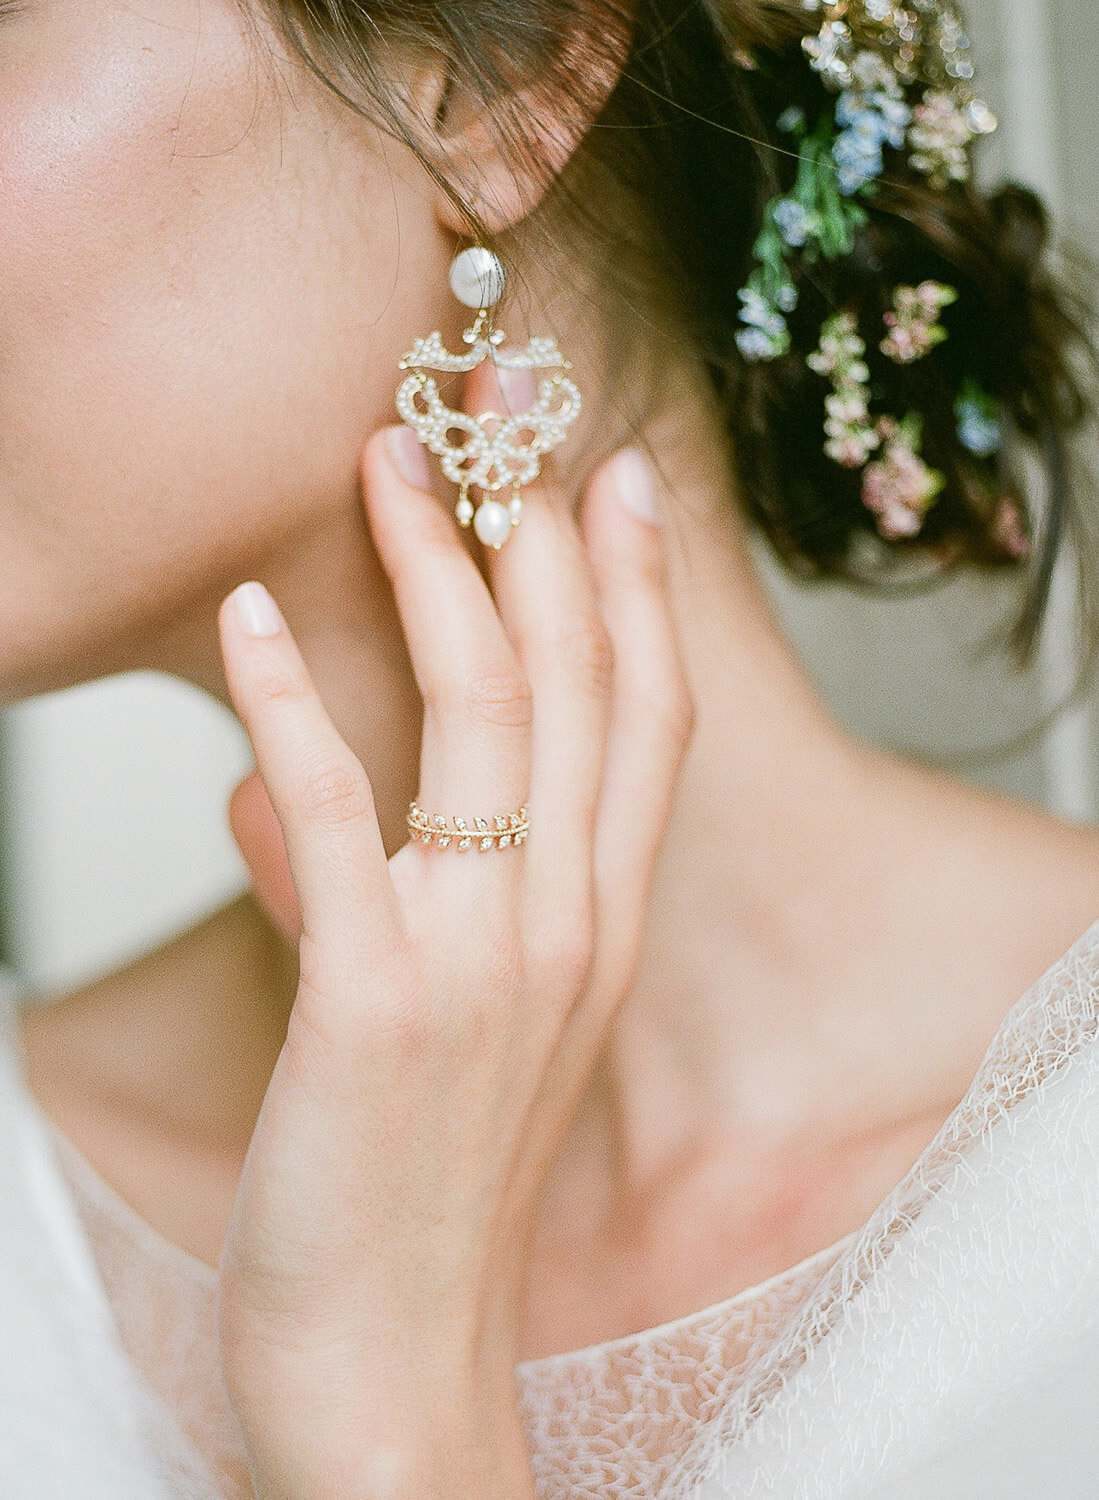 Bride's portrait detail of earring and ring by Portugal Wedding Photographer